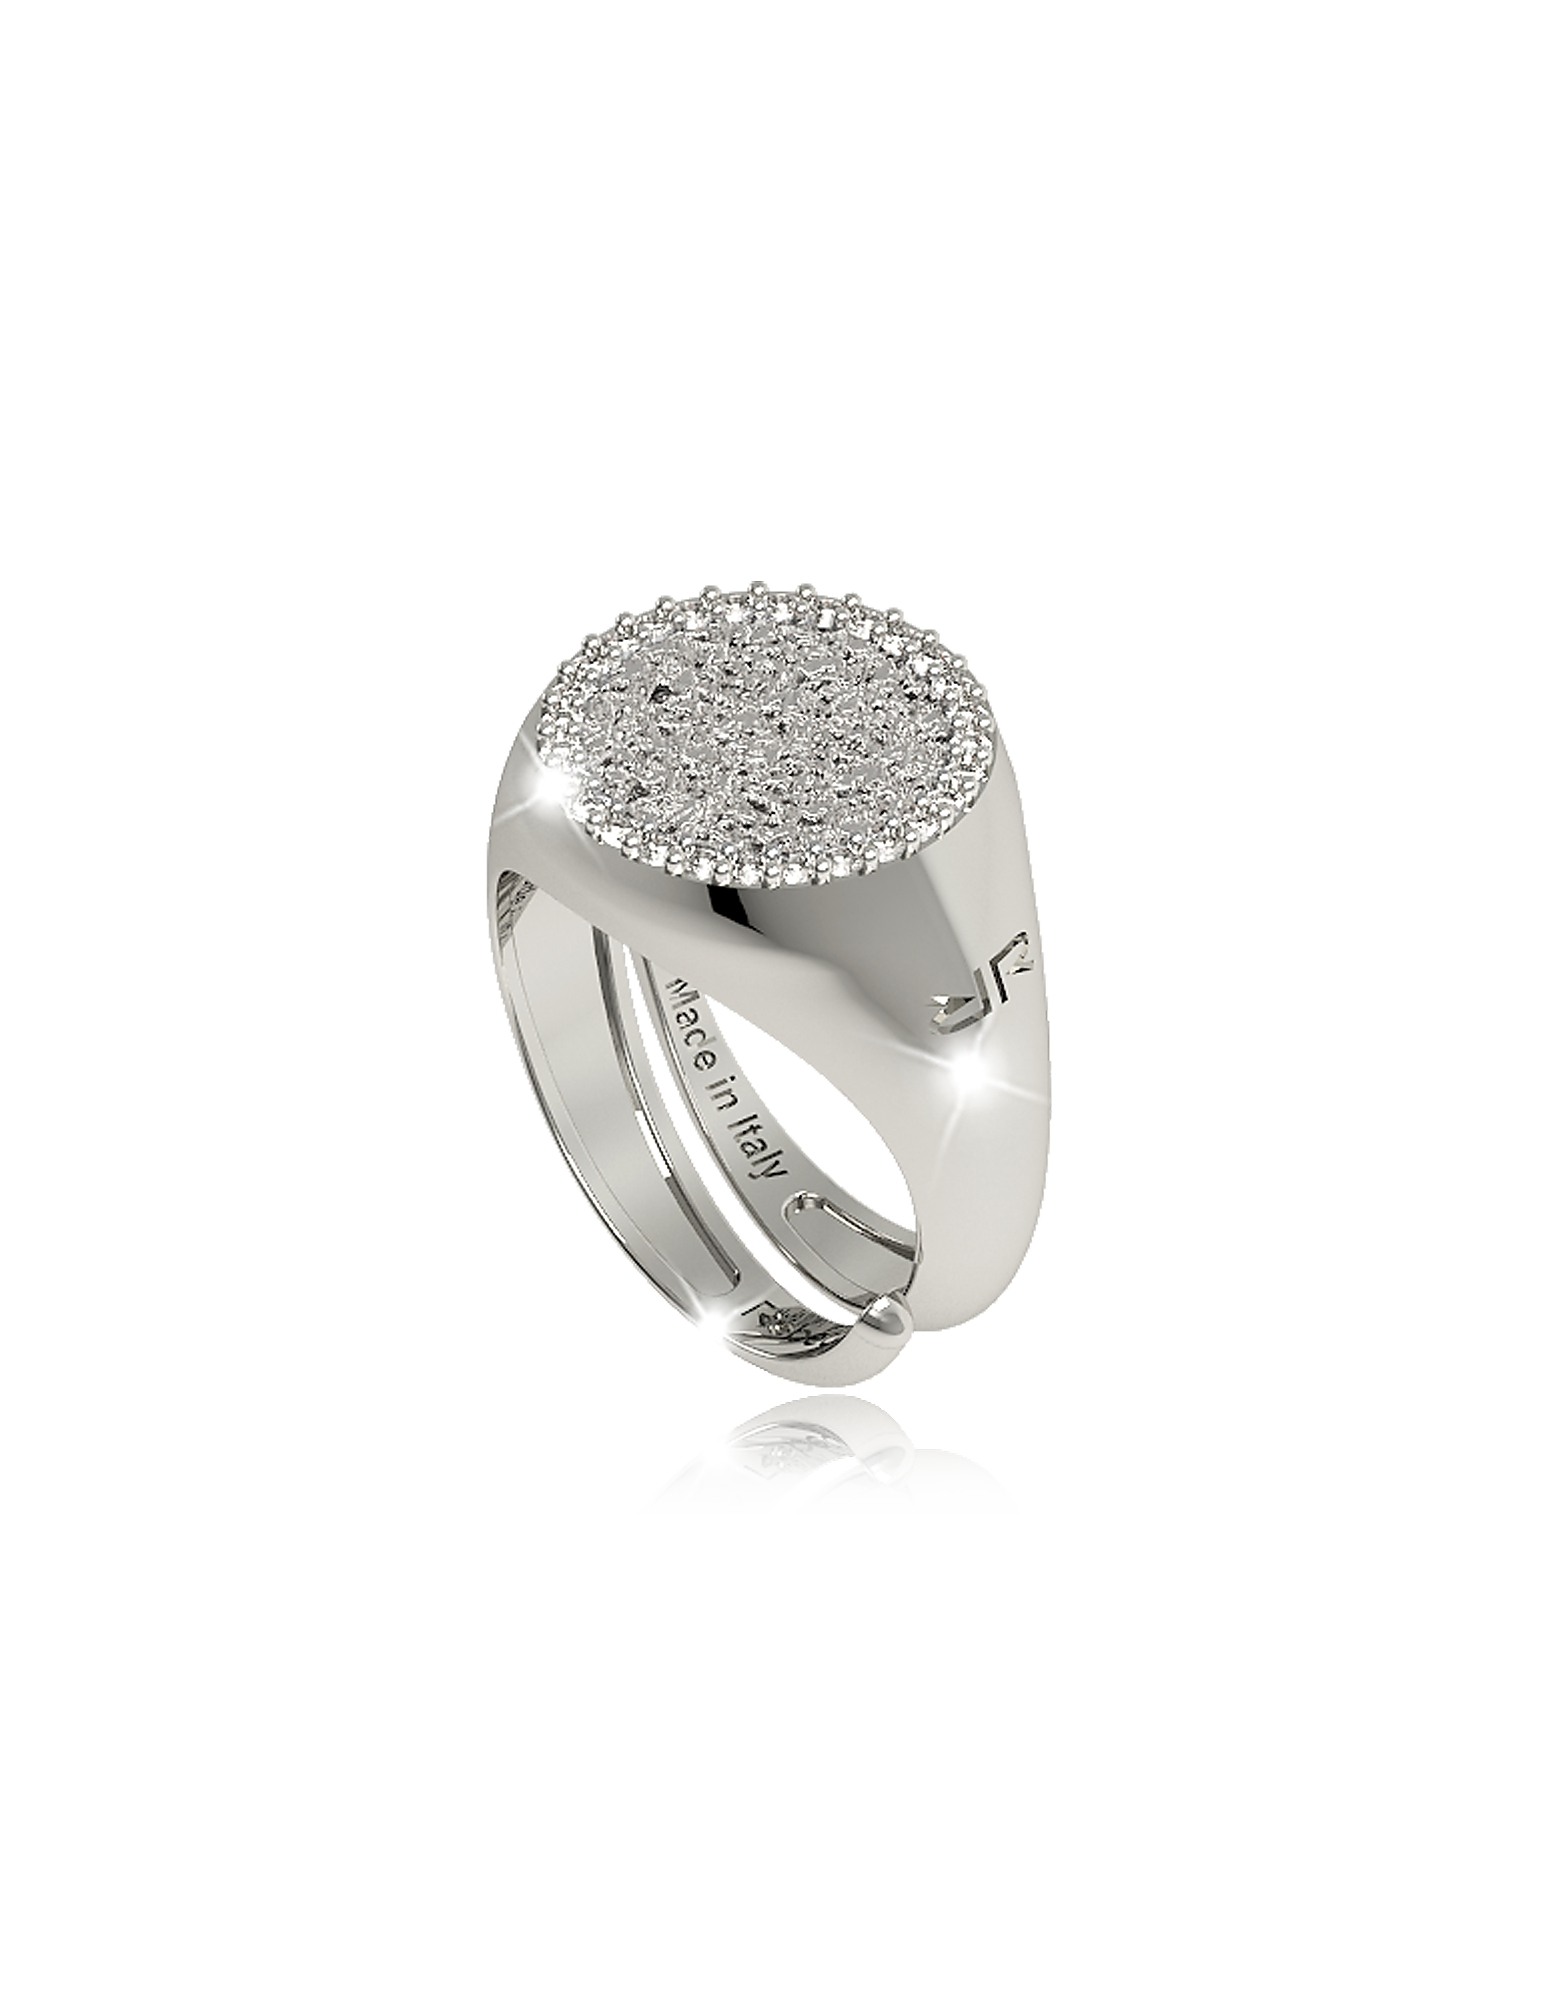 R-ZERO Rhodium Over Bronze Ring, Silver